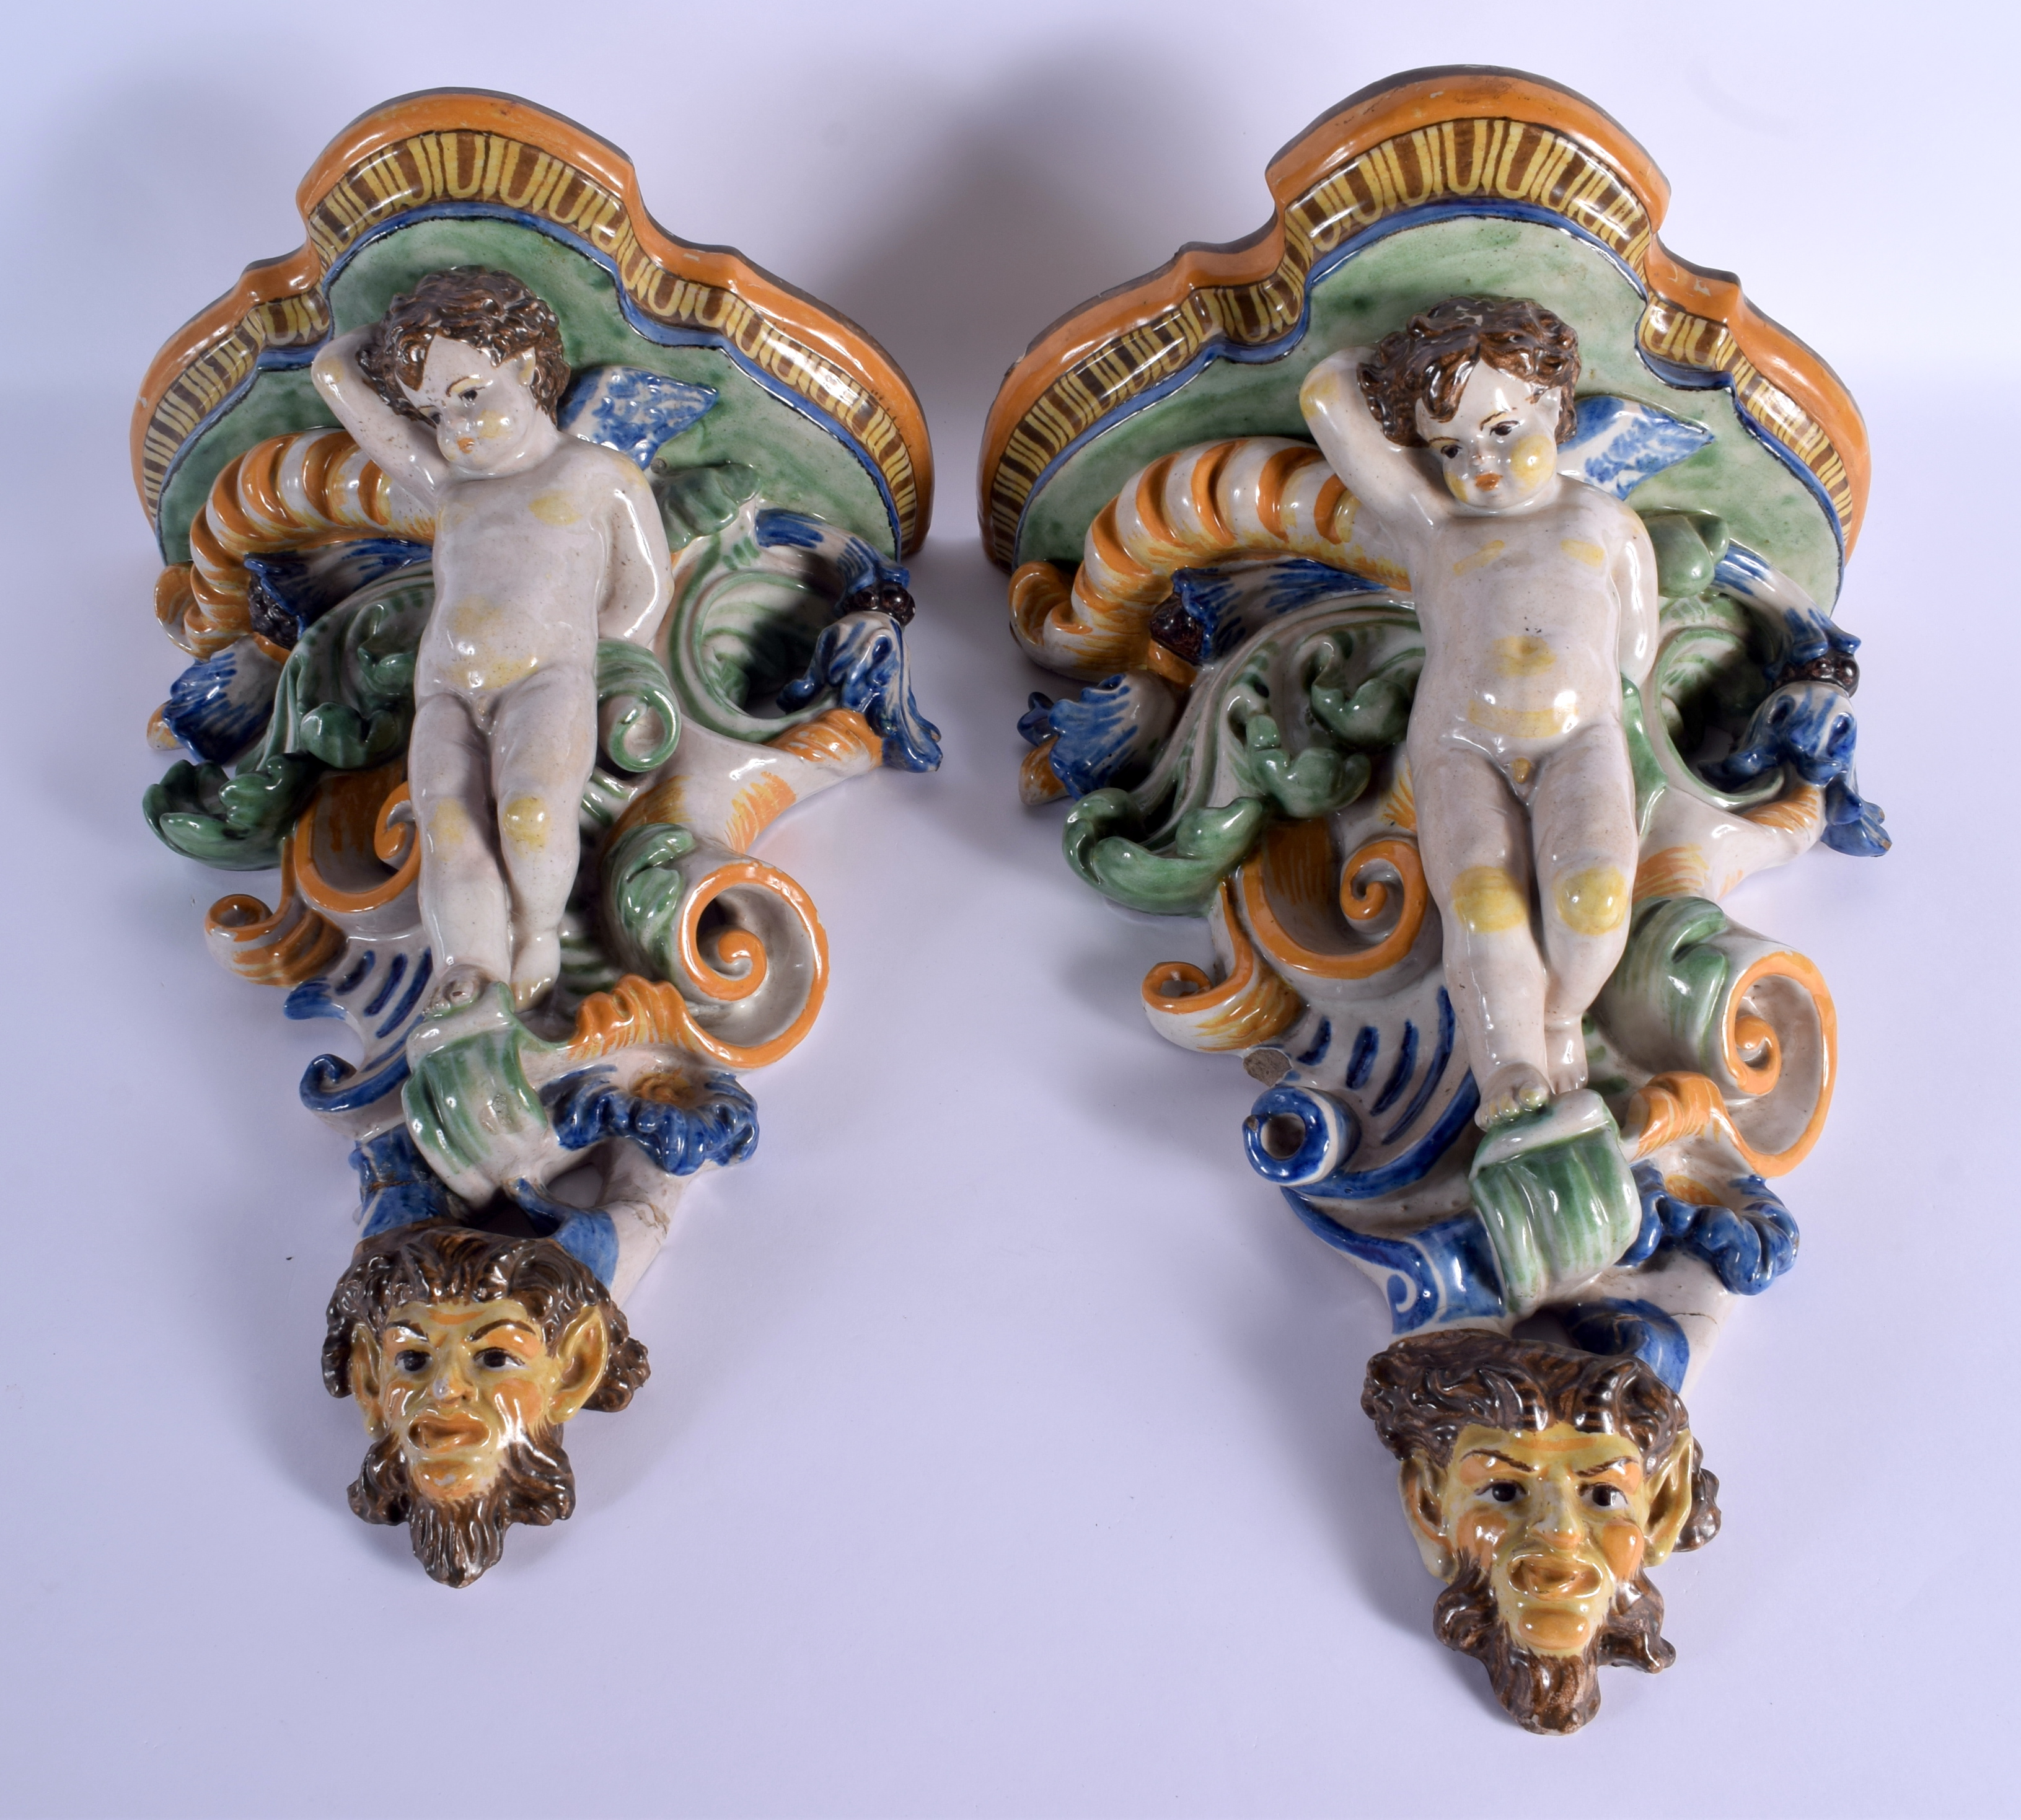 A LARGE PAIR OF 19TH CENTURY ITALIAN MAJOLICA POTTERY WALL BRACKETS formed with figures over mask he